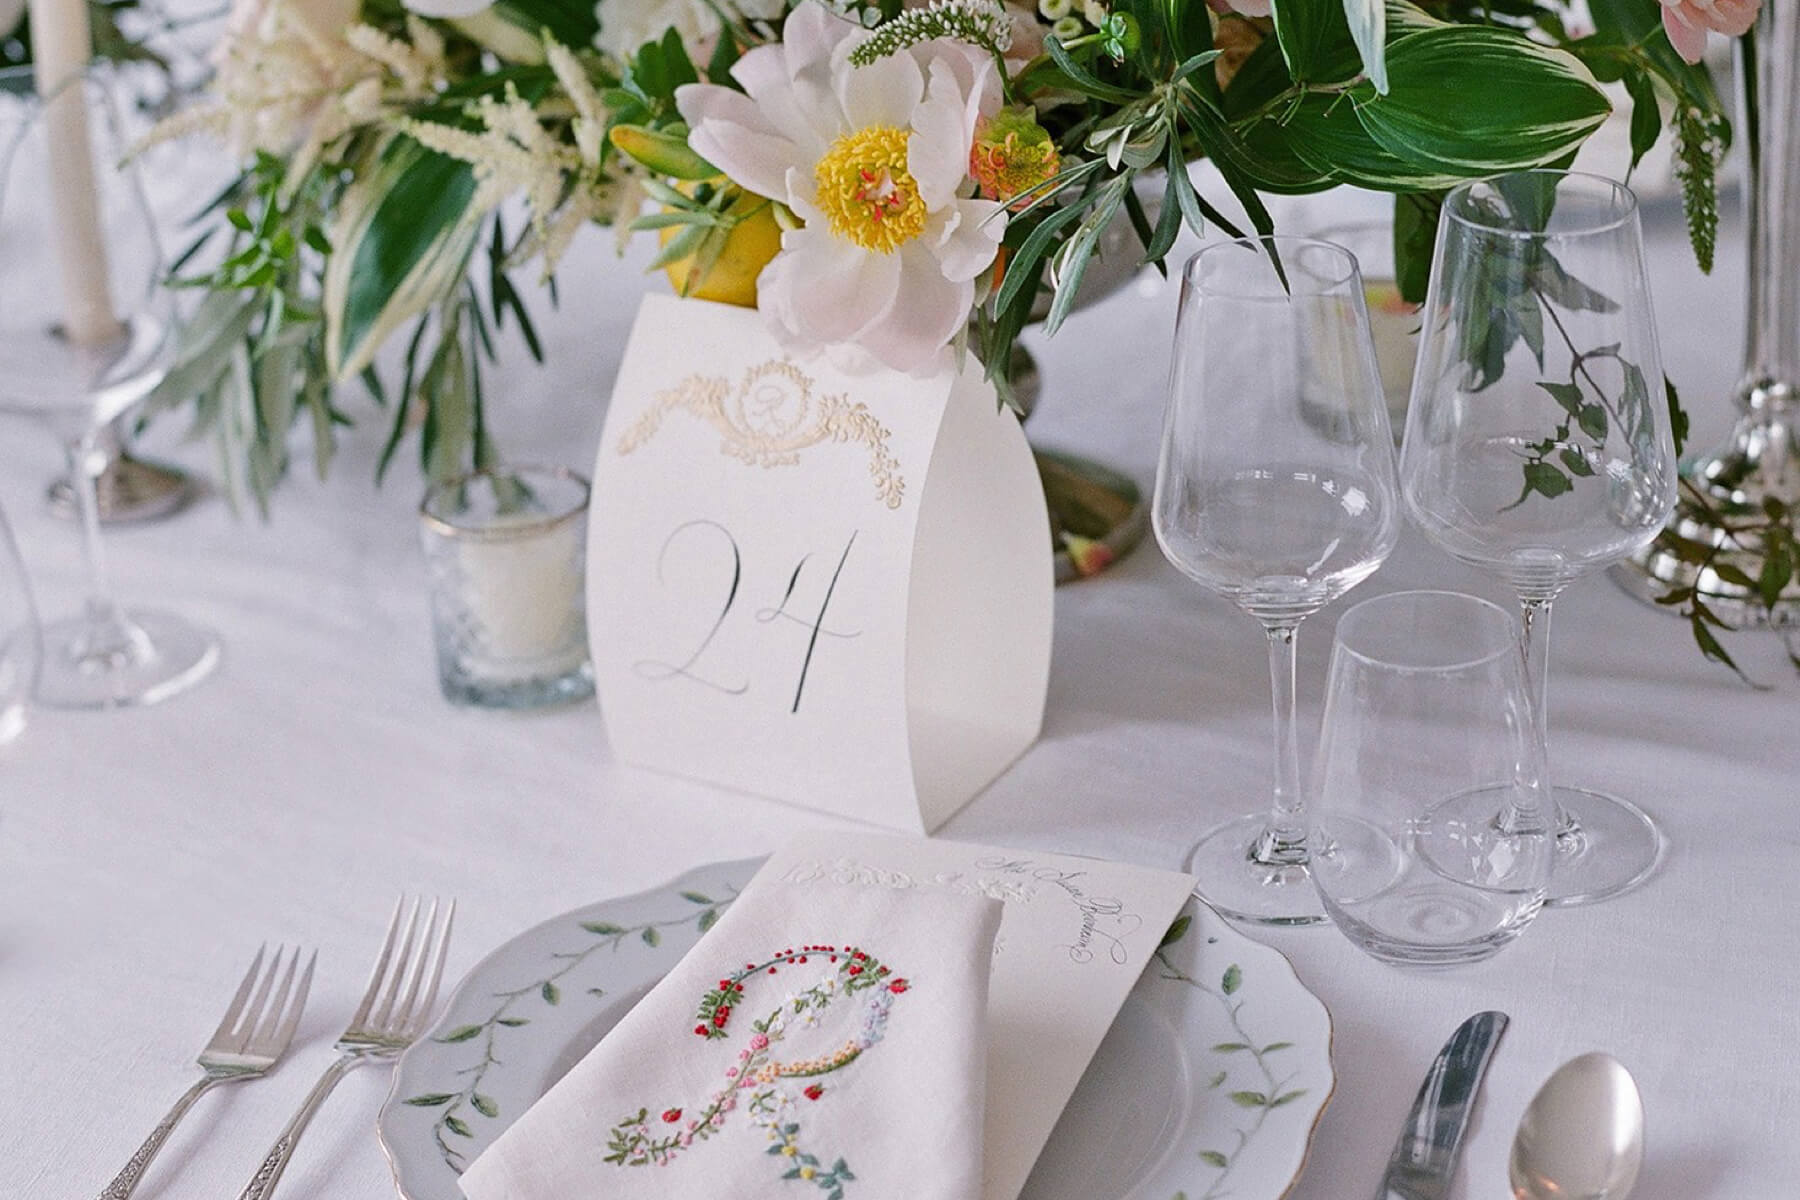 How to be a good wedding guest with Stefanie Cove